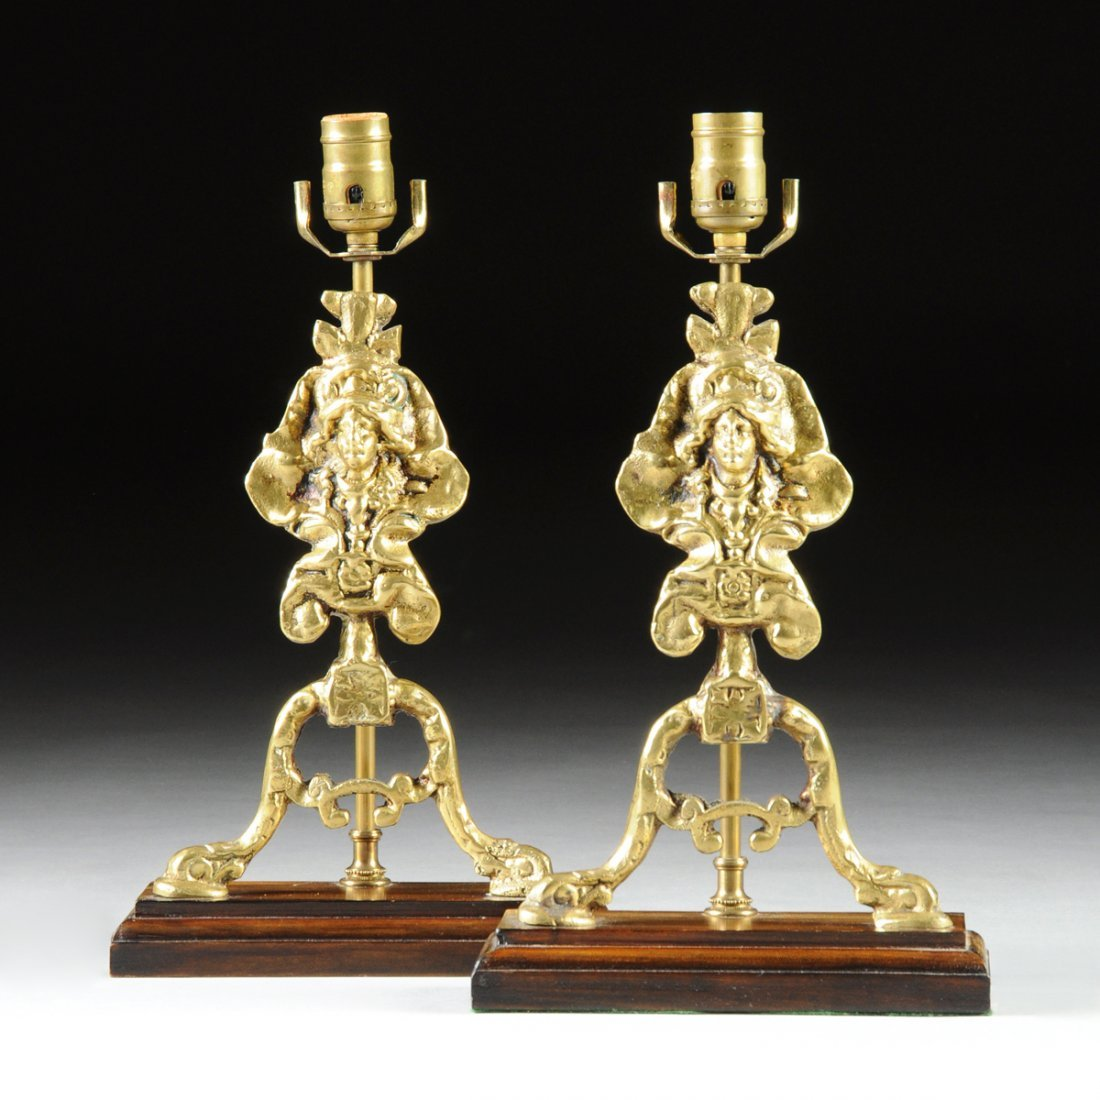 A PAIR OF REGENCE REVIVAL POLISHED BRASS CHENET FORM